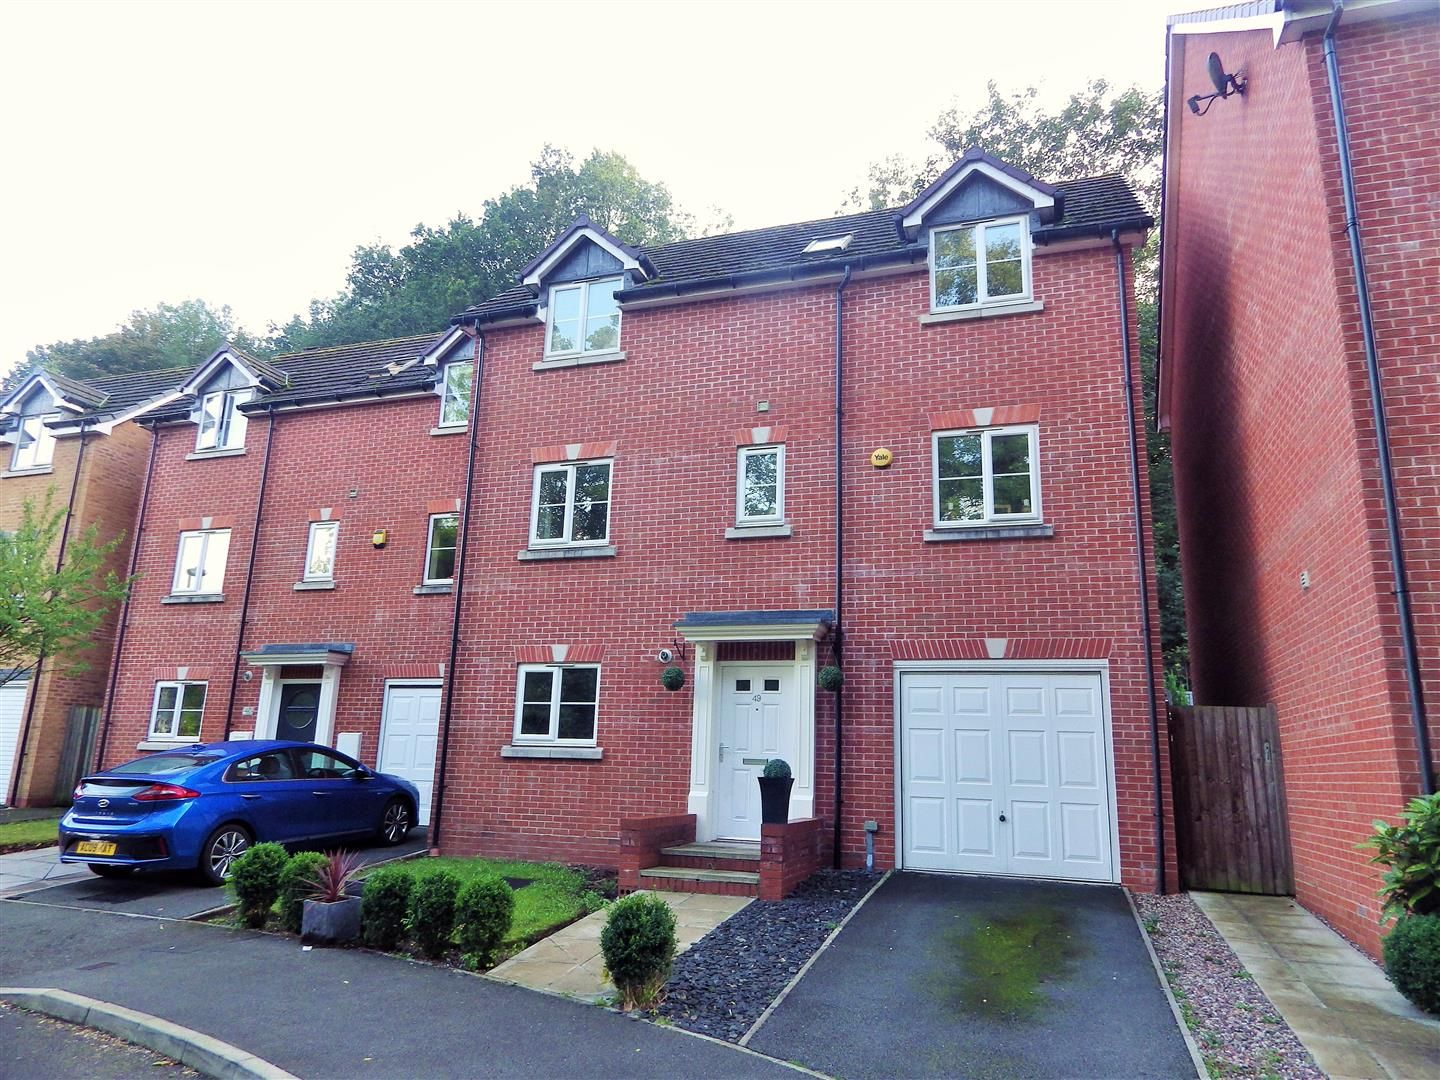 4 bed semi-detached for sale 1